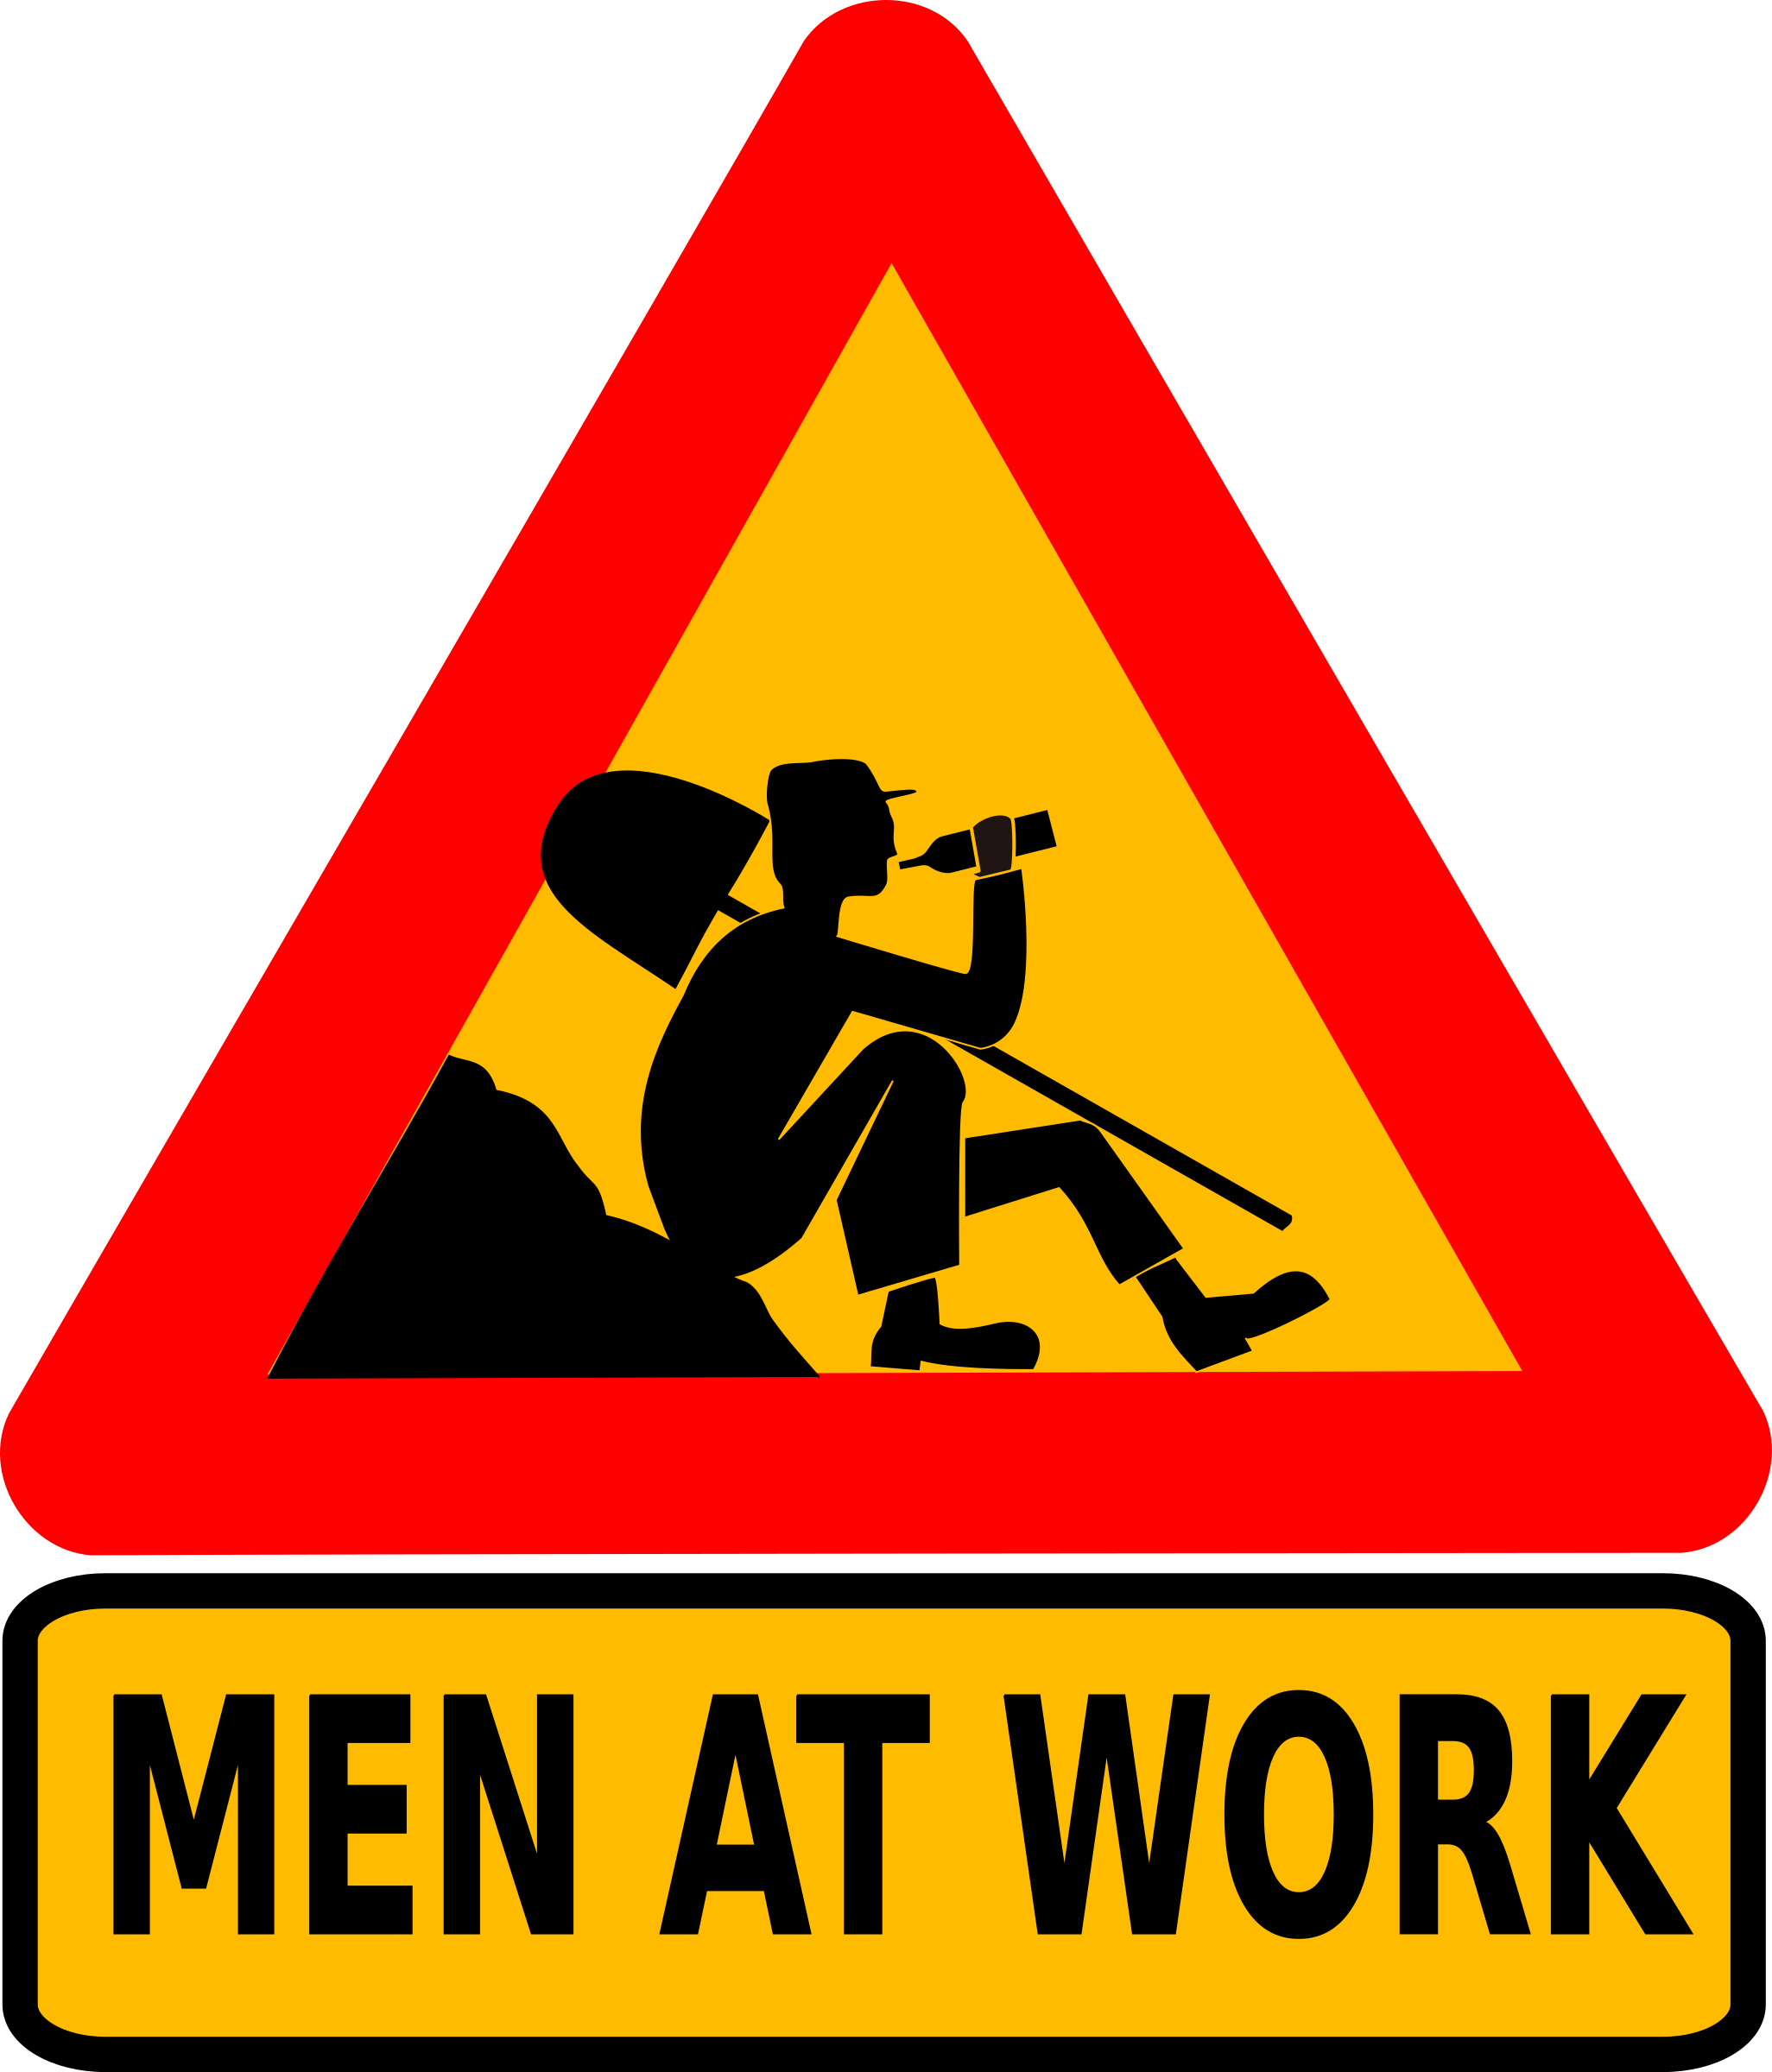 Men at work by dominiquechappard